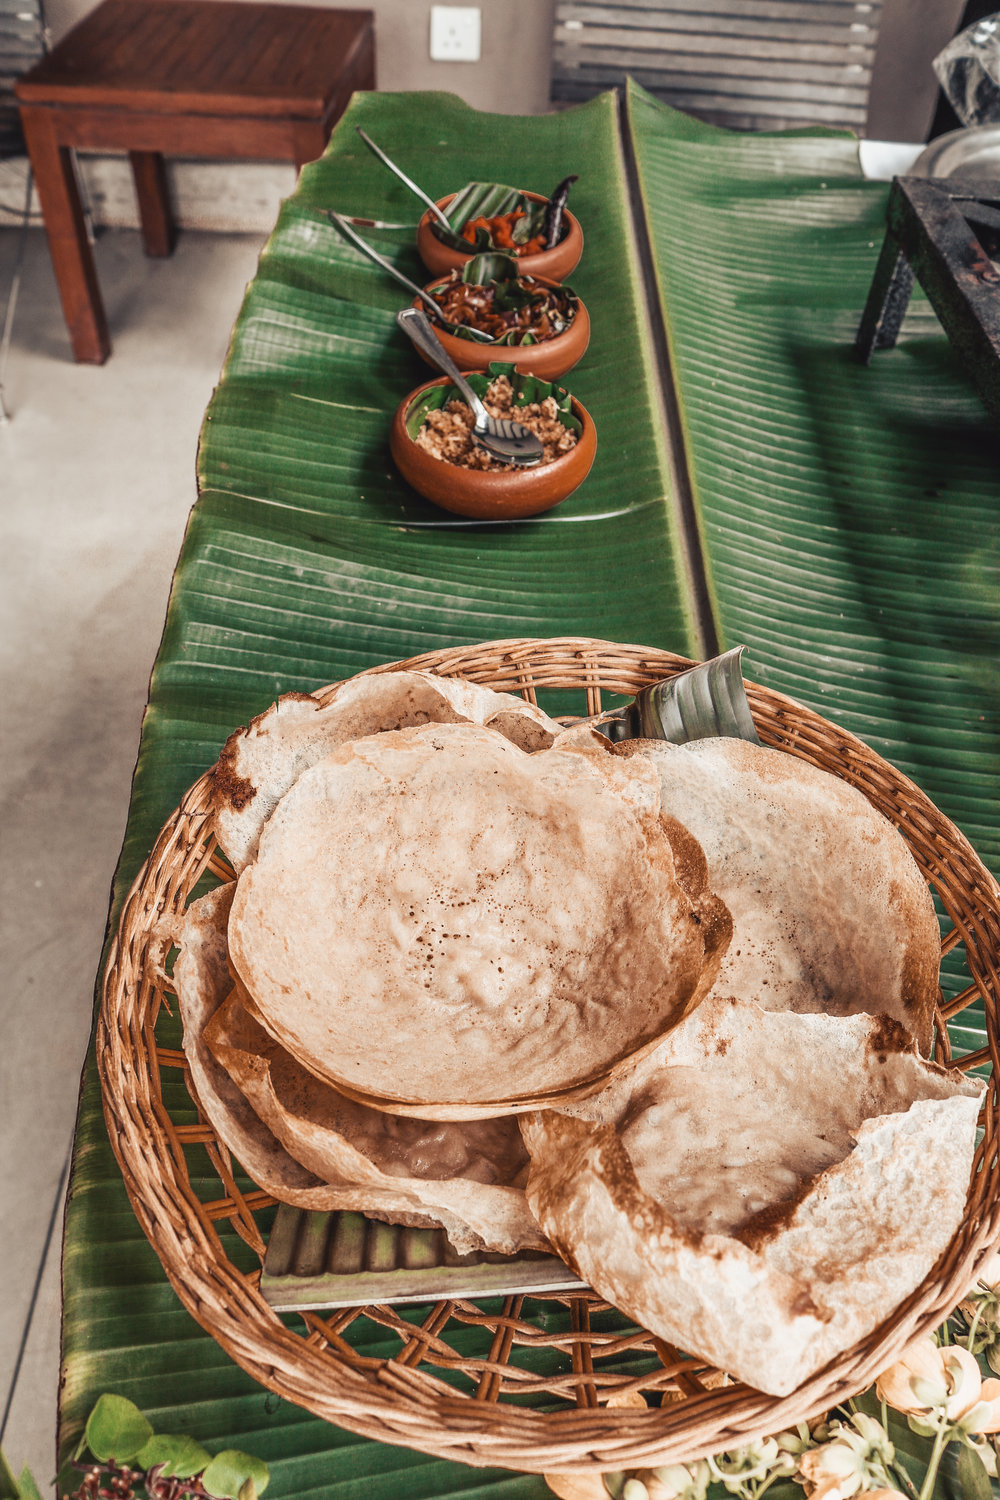 Traditional Sri Lanka food experience by Mount Havana - Traditional Sri Lanka food experience by Mount Havana - One of the most popular and traditional food in Sri Lanka are hoppers (called appa as well) in the shape of bowl. They are usually served for breakfast or dinner. One of the most popular ones comes with the egg cooked into the center of the bowl-shaped hopper. You can fill the hopper with the rest of their typical add-ons such as sambar (similar to vegetable stew), sambol (coconut, onion and cilli) served in small multiple dishes. Roll it and eat it. Cooked and served right there on a terrace with a view - it can't get better than this. Hopefully you do like spicy, cause Sri Lanka is all about that.